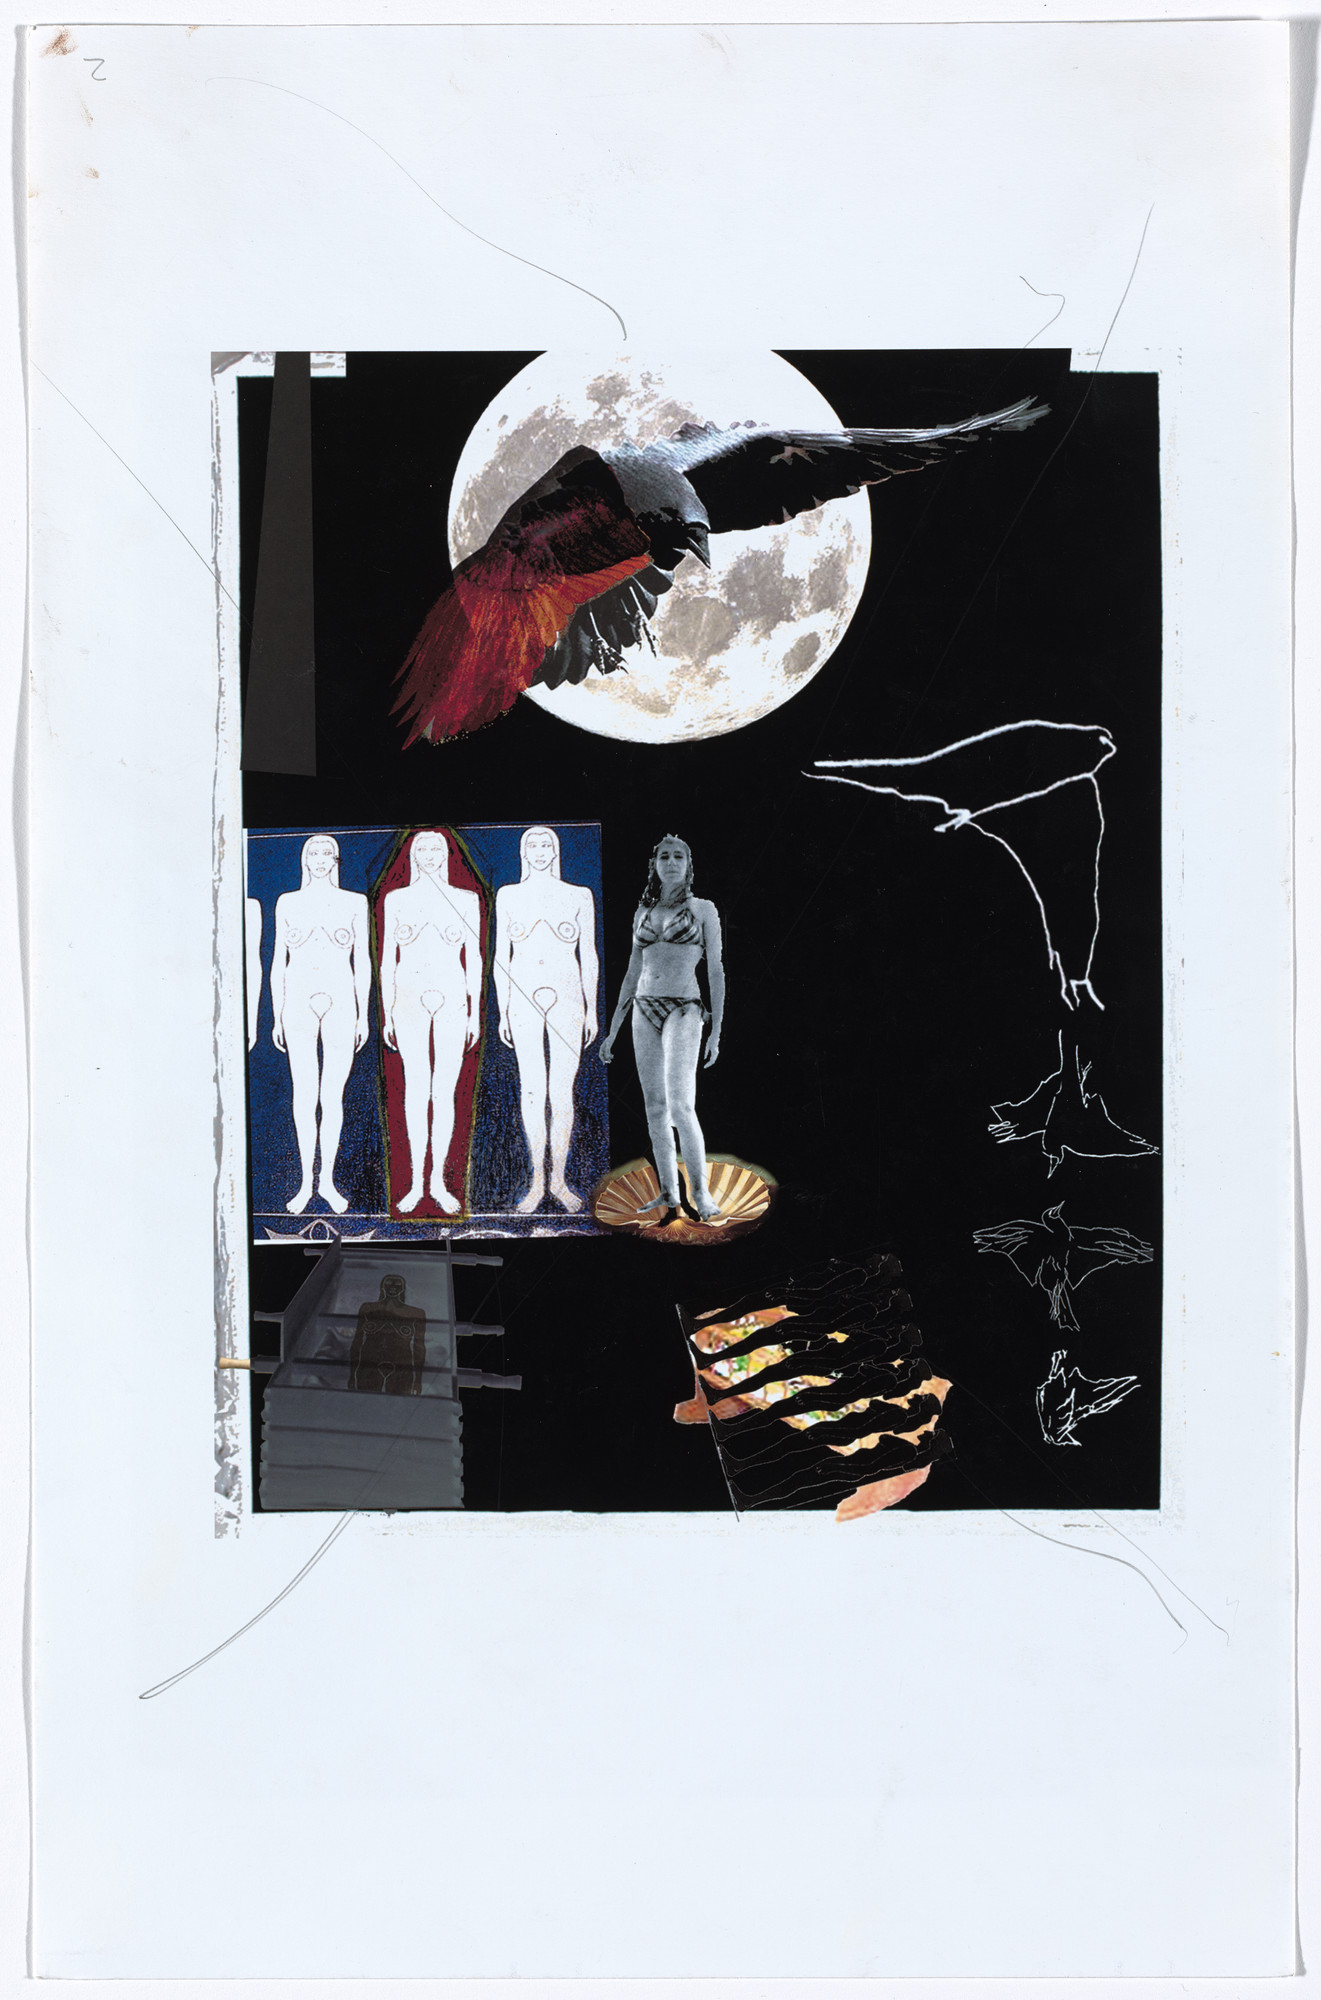 Jo Baer. Study for Memorial for an Art World Body (Nevermore). 2009